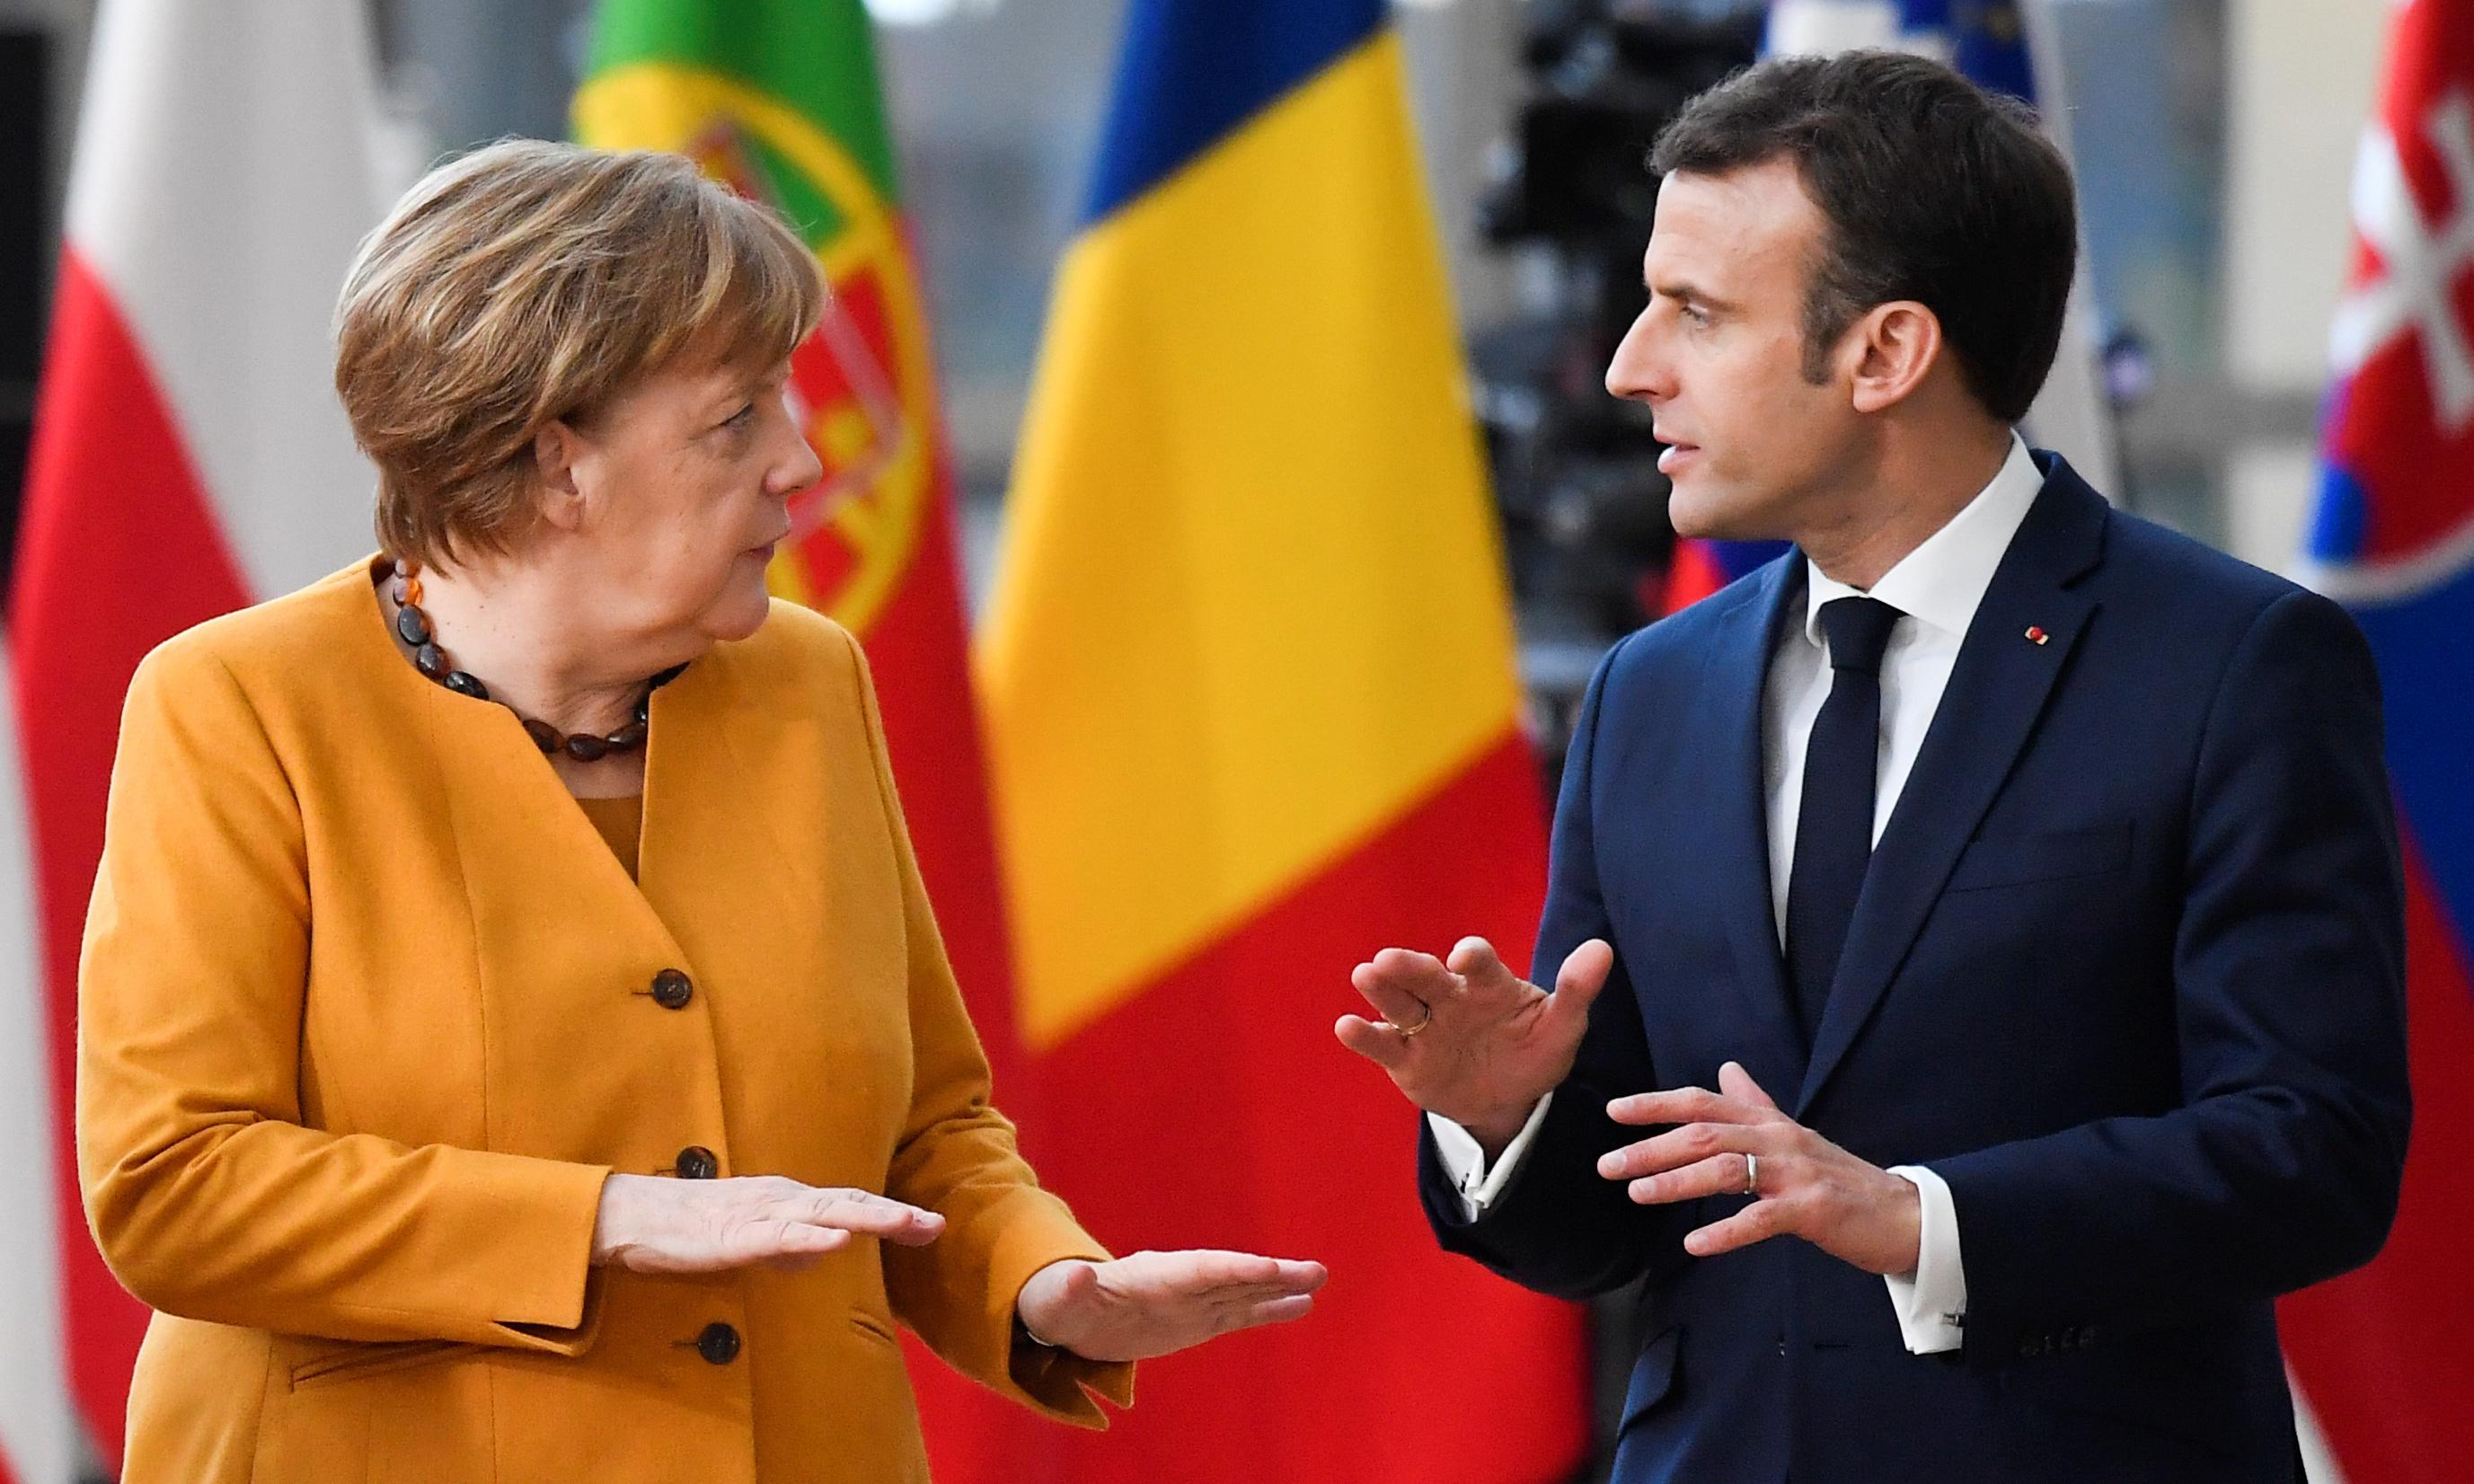 The Franco-German tussle at the heart of who will lead the EU